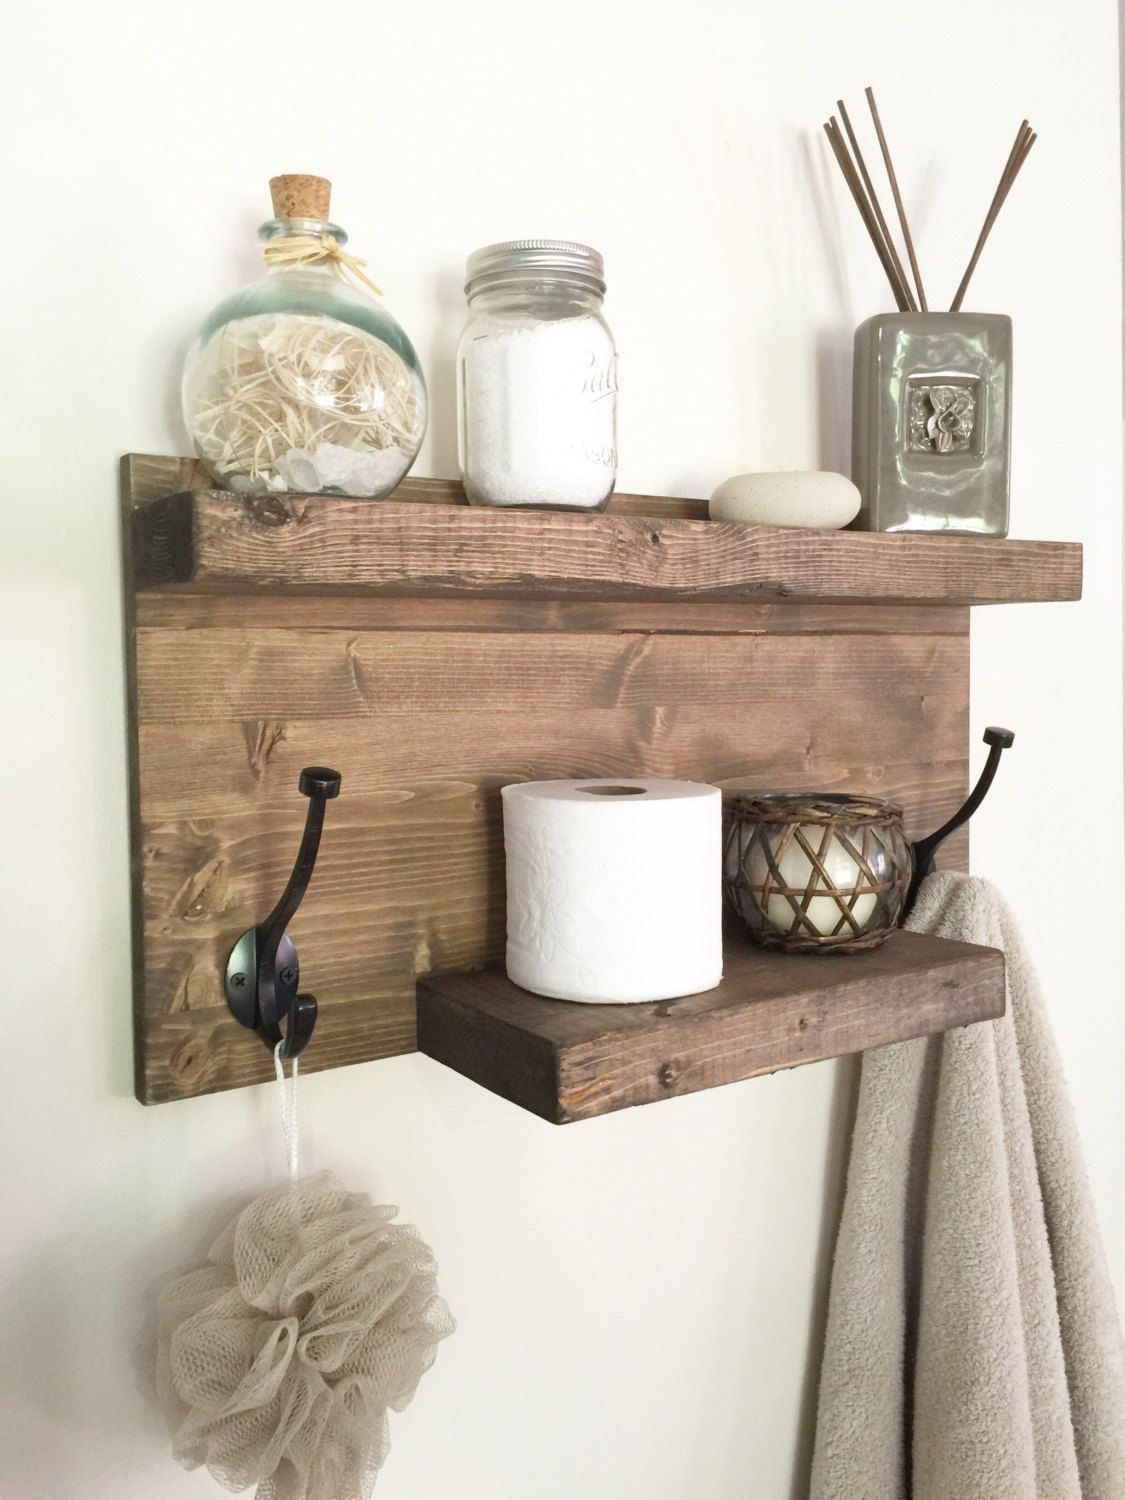 rustic bathroom shelf rustic wood shelf towel rack entryway shelf rh pinterest com rustic bathroom cabinet with mirror rustic bathroom storage ideas